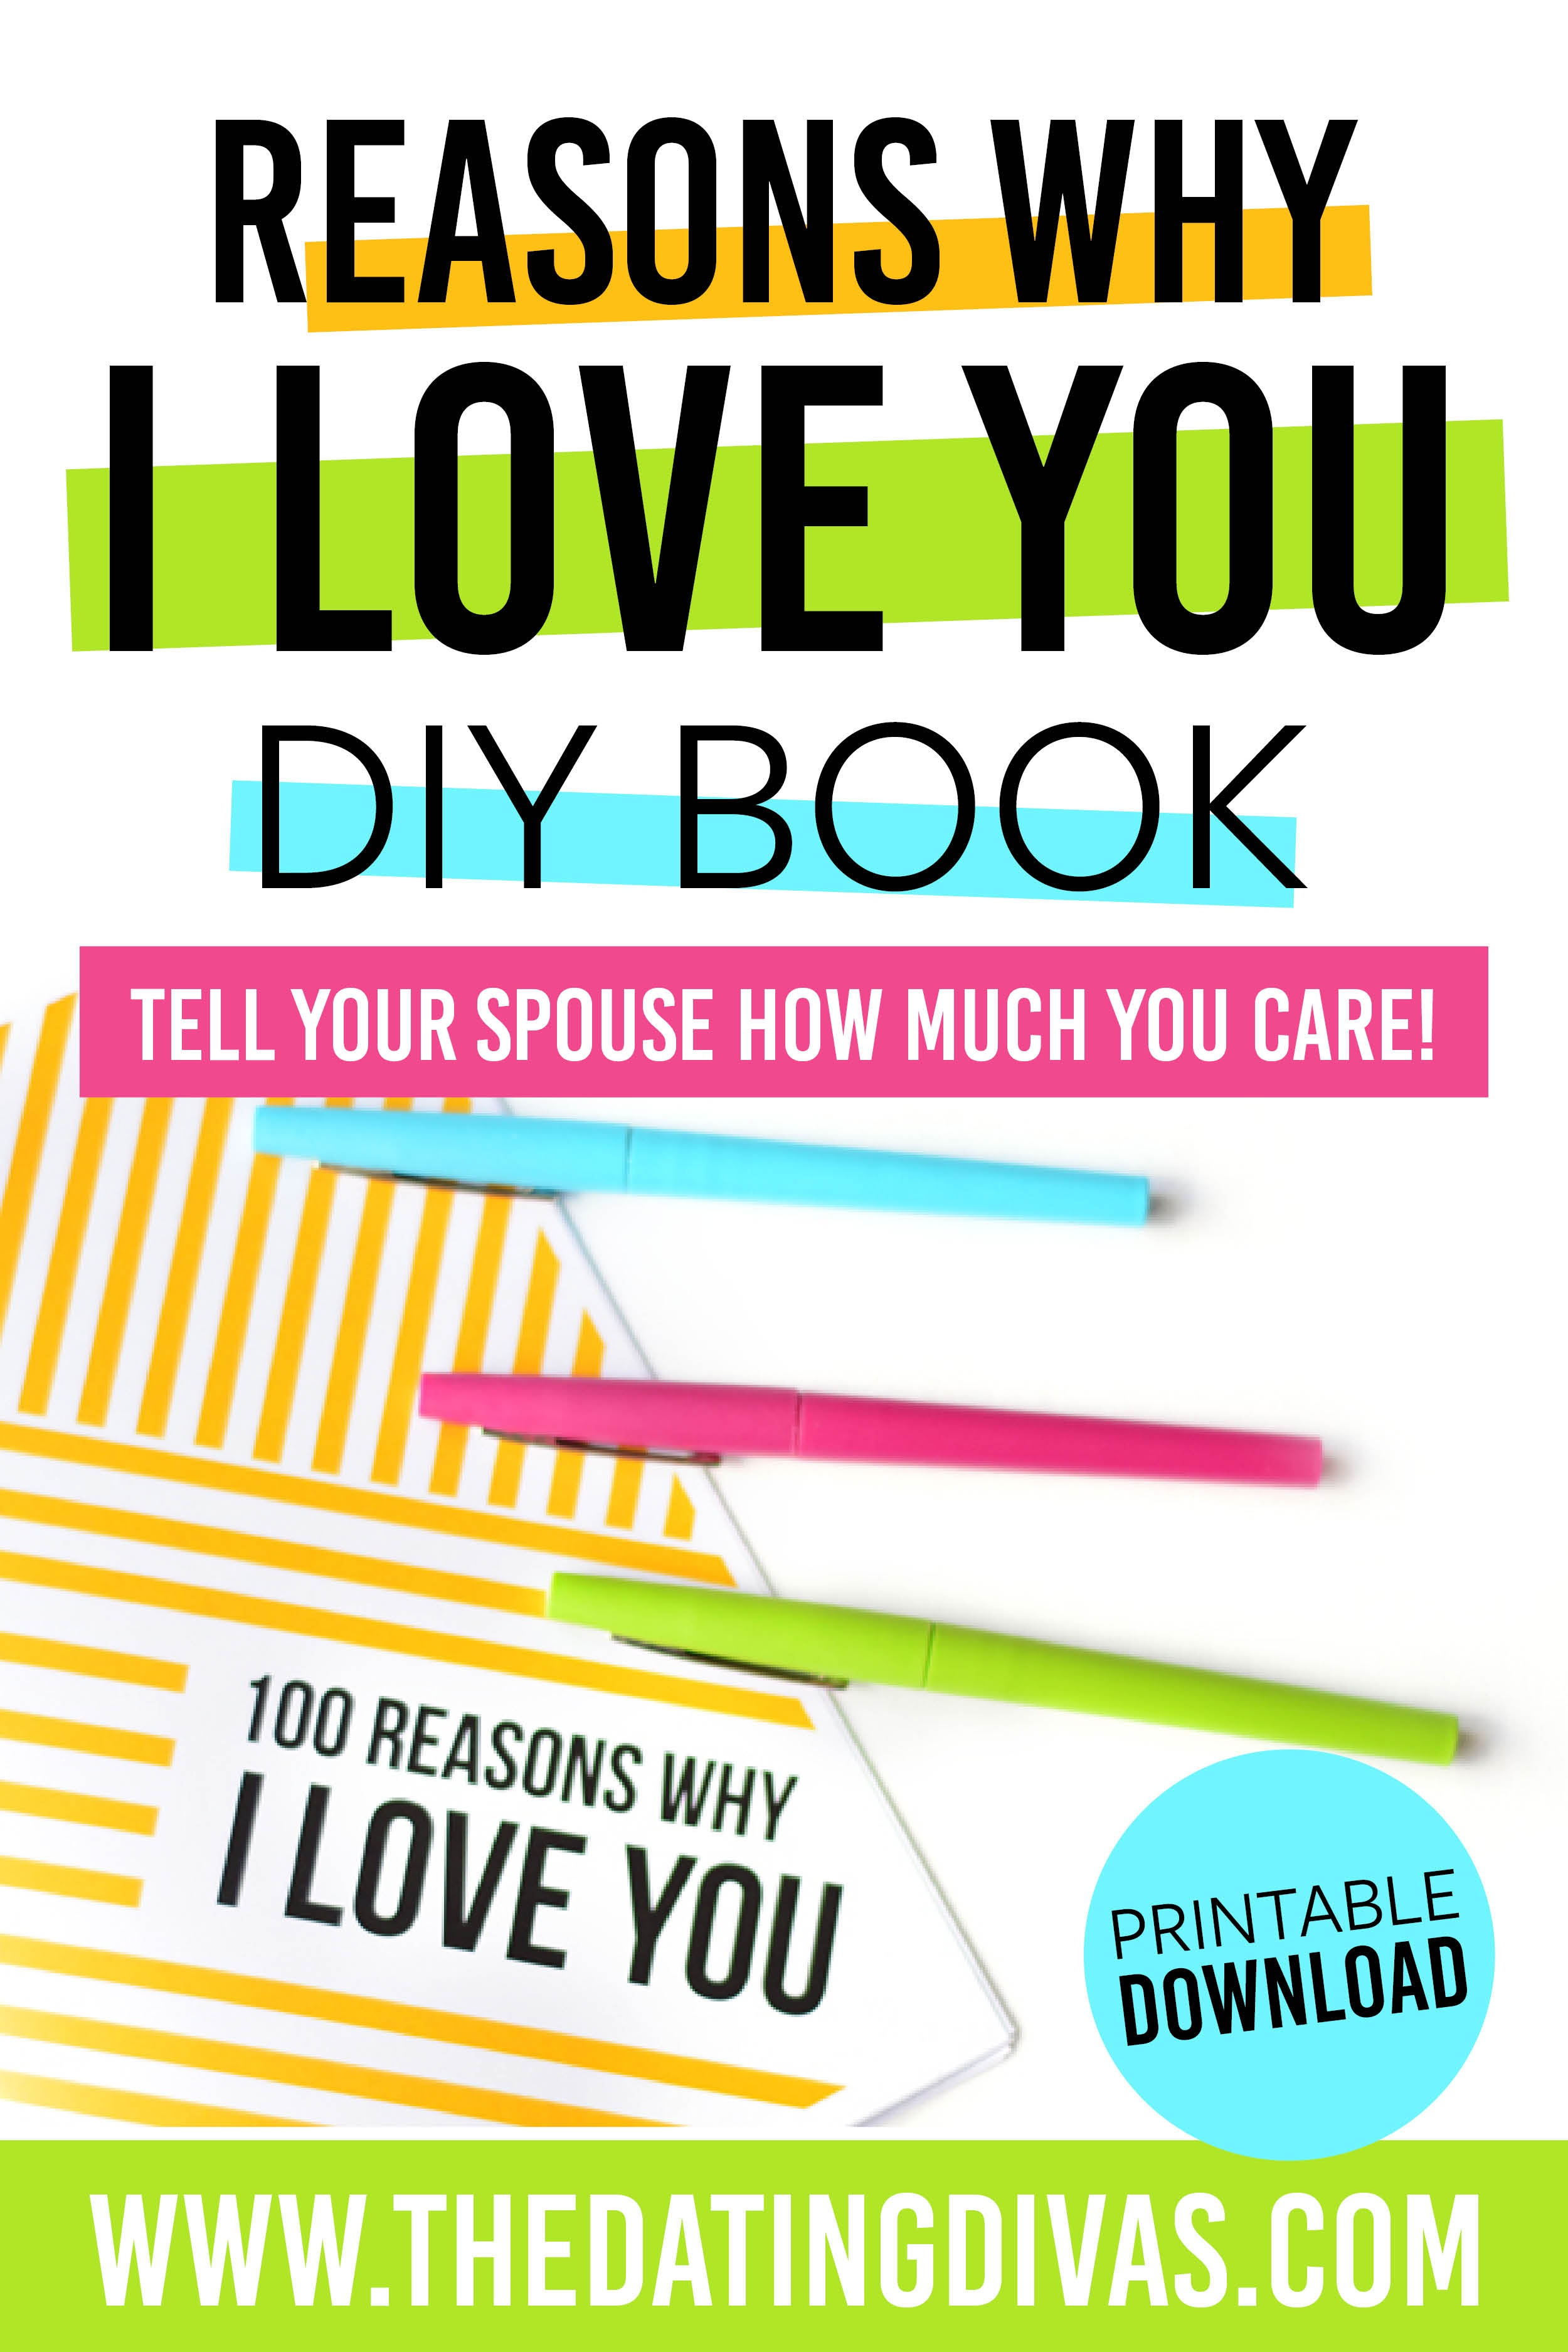 Reasons Why I Love You | From The Dating Divas - 52 Reasons Why I Love You Free Printable Template